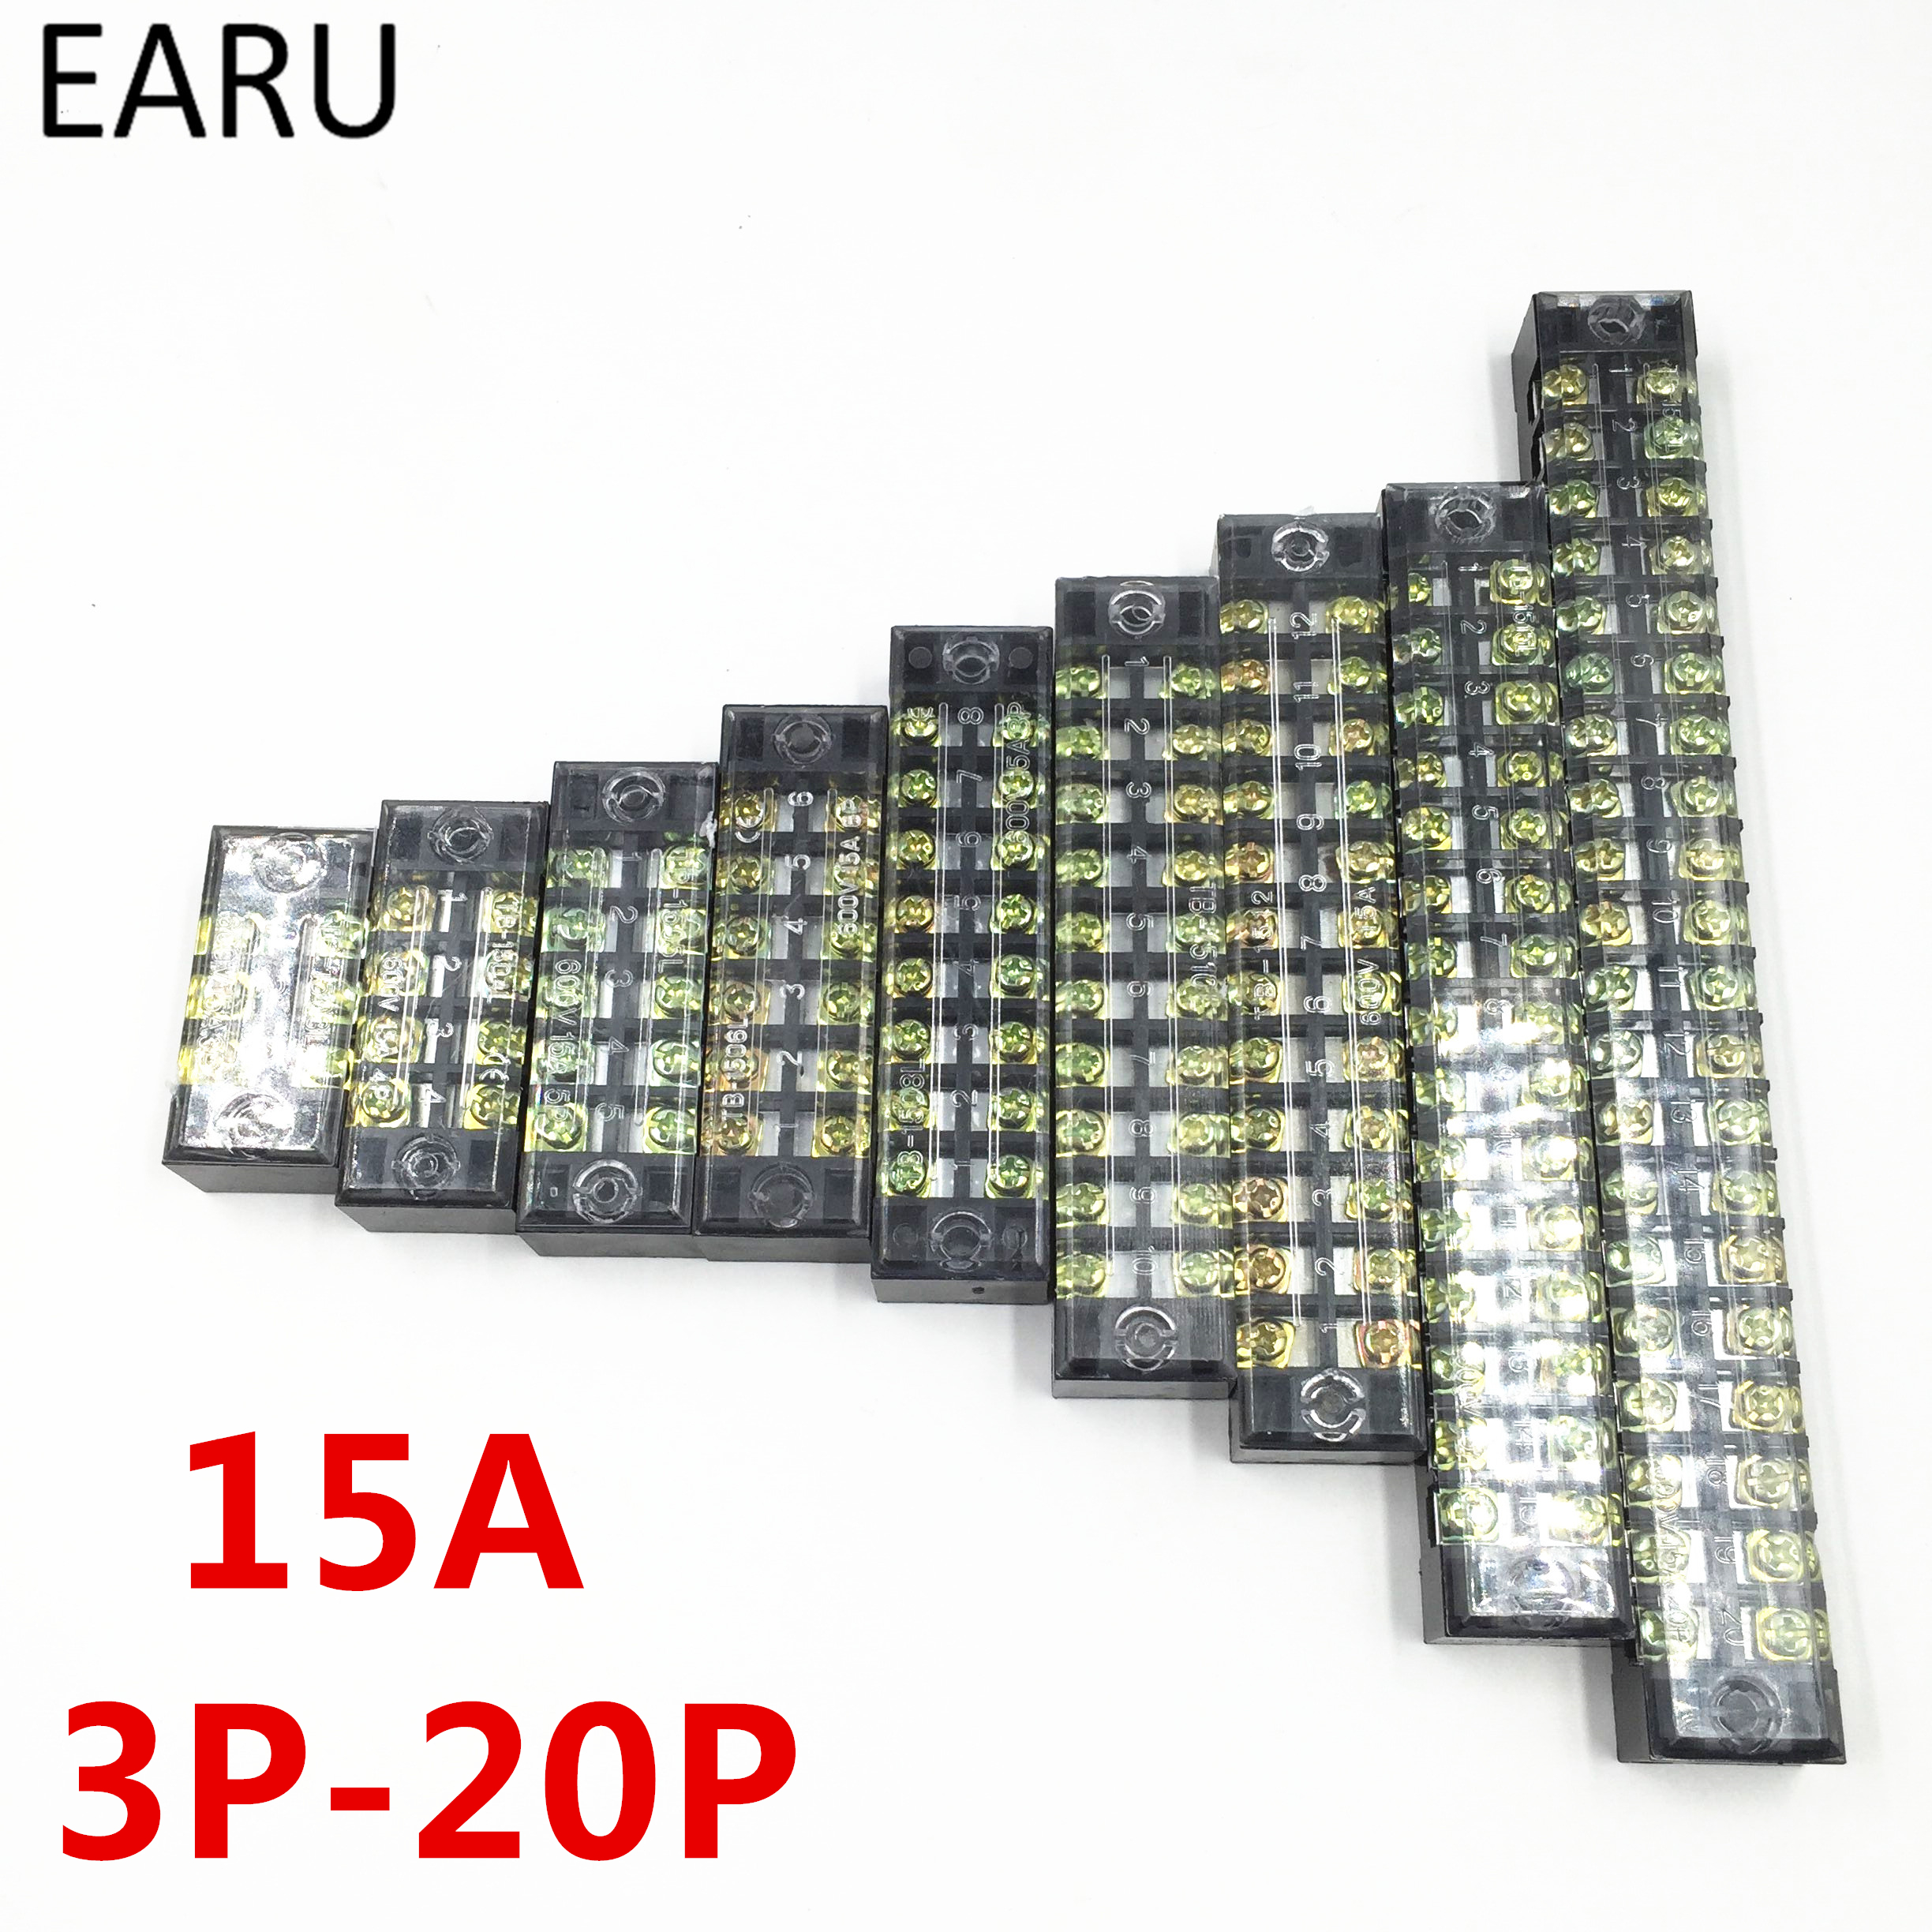 15A 600V Dual Row Barrier Screw Terminal Block Wire Connector TB Series 3 4 5 6 8 10 12 16 20 Positions Ways Factory Wholesale 5 pcs 600v 45a 4 positions 4p dual rows covered barrier screw terminal block